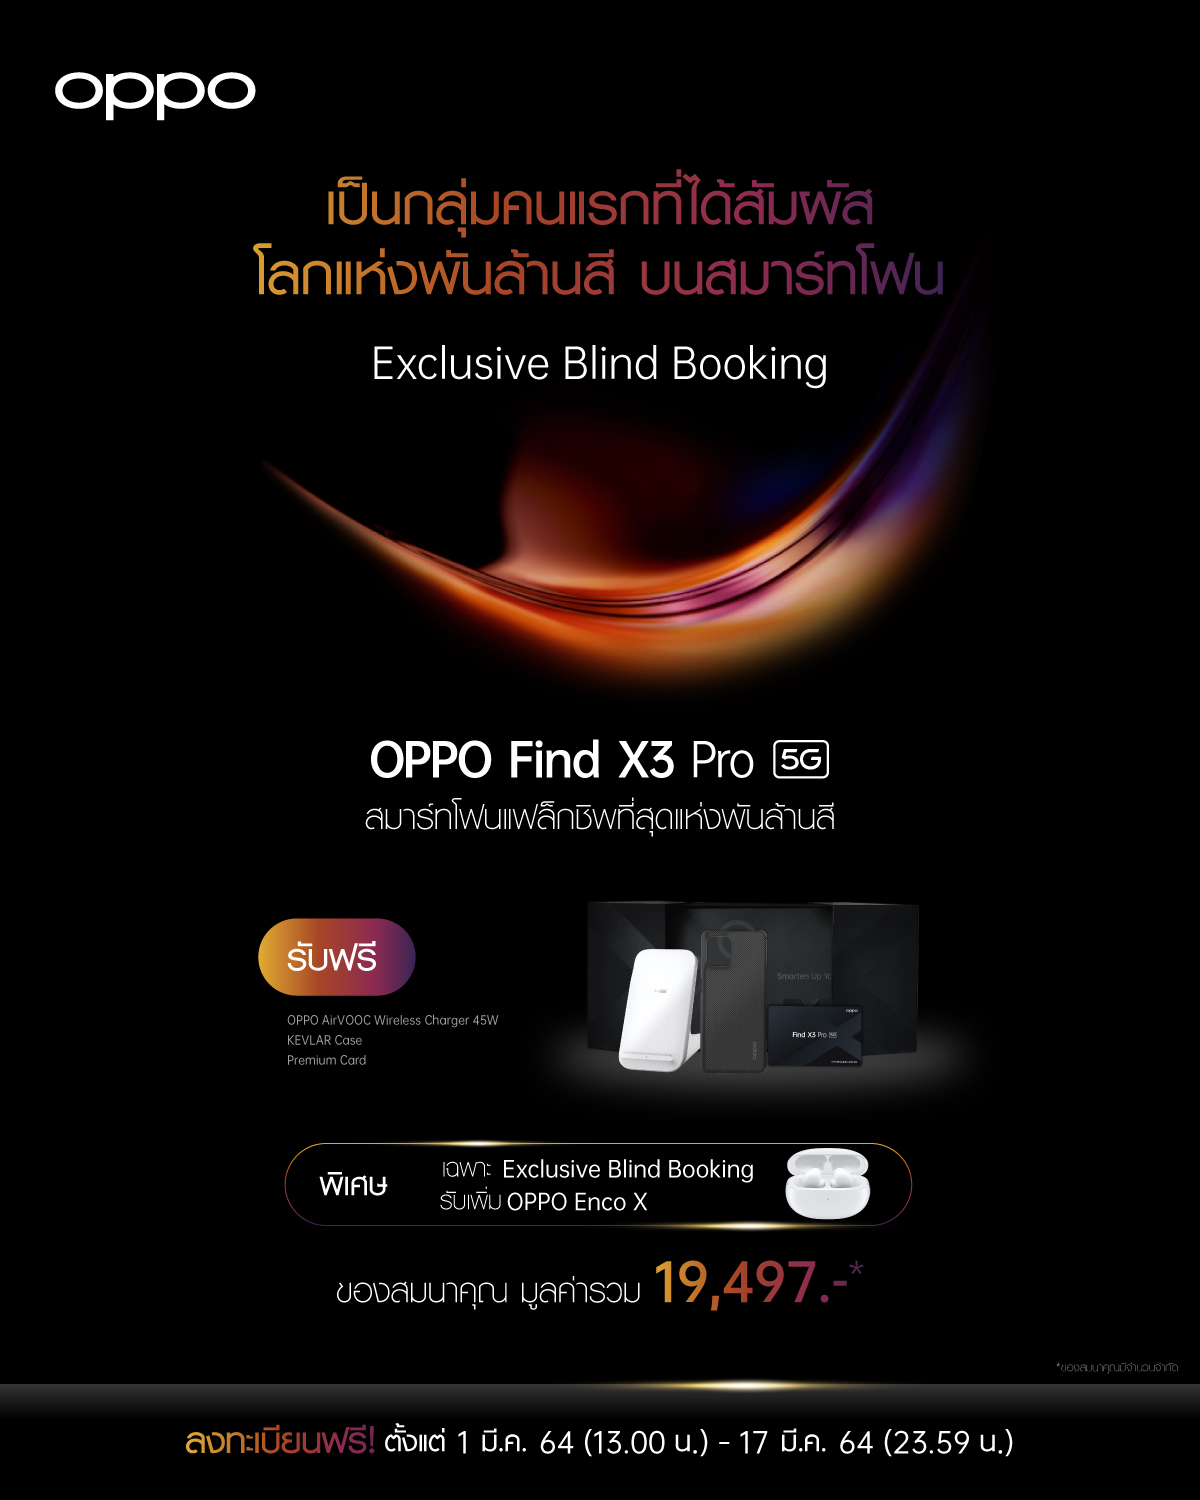 Exclusive Blind Booking OPPO Find X3 Pro 5G (2)